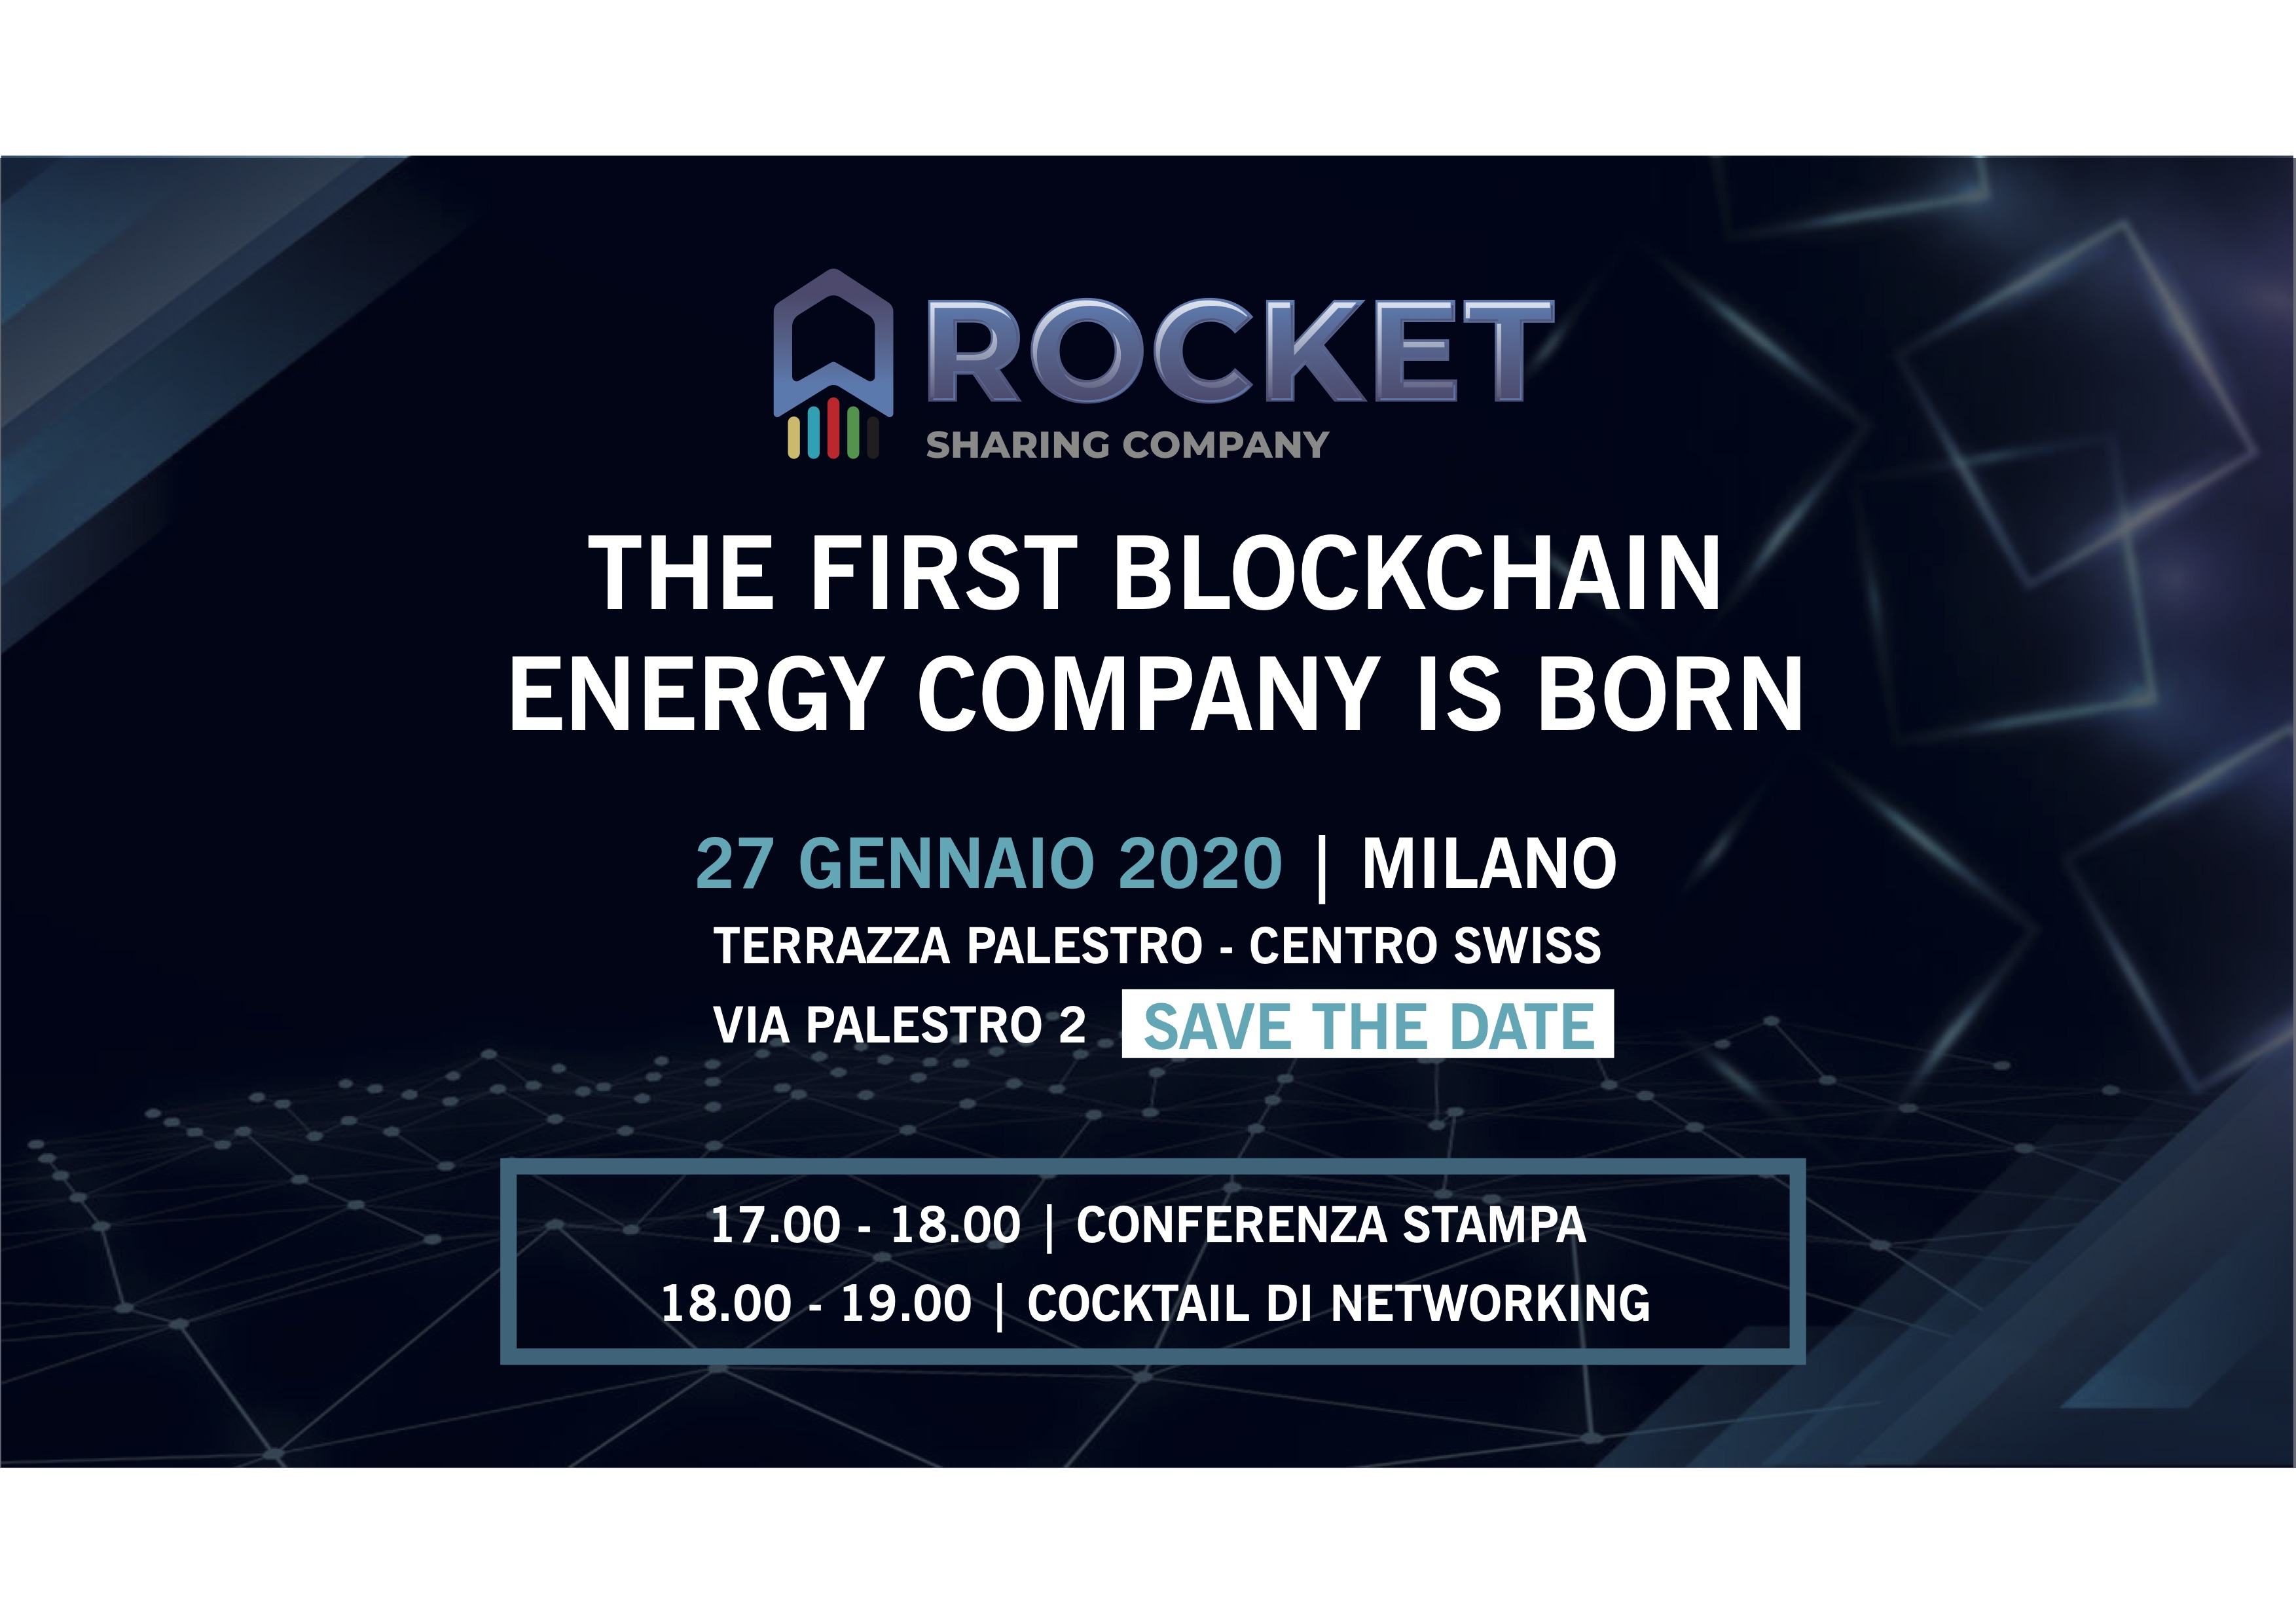 The first blockchain energy company is born